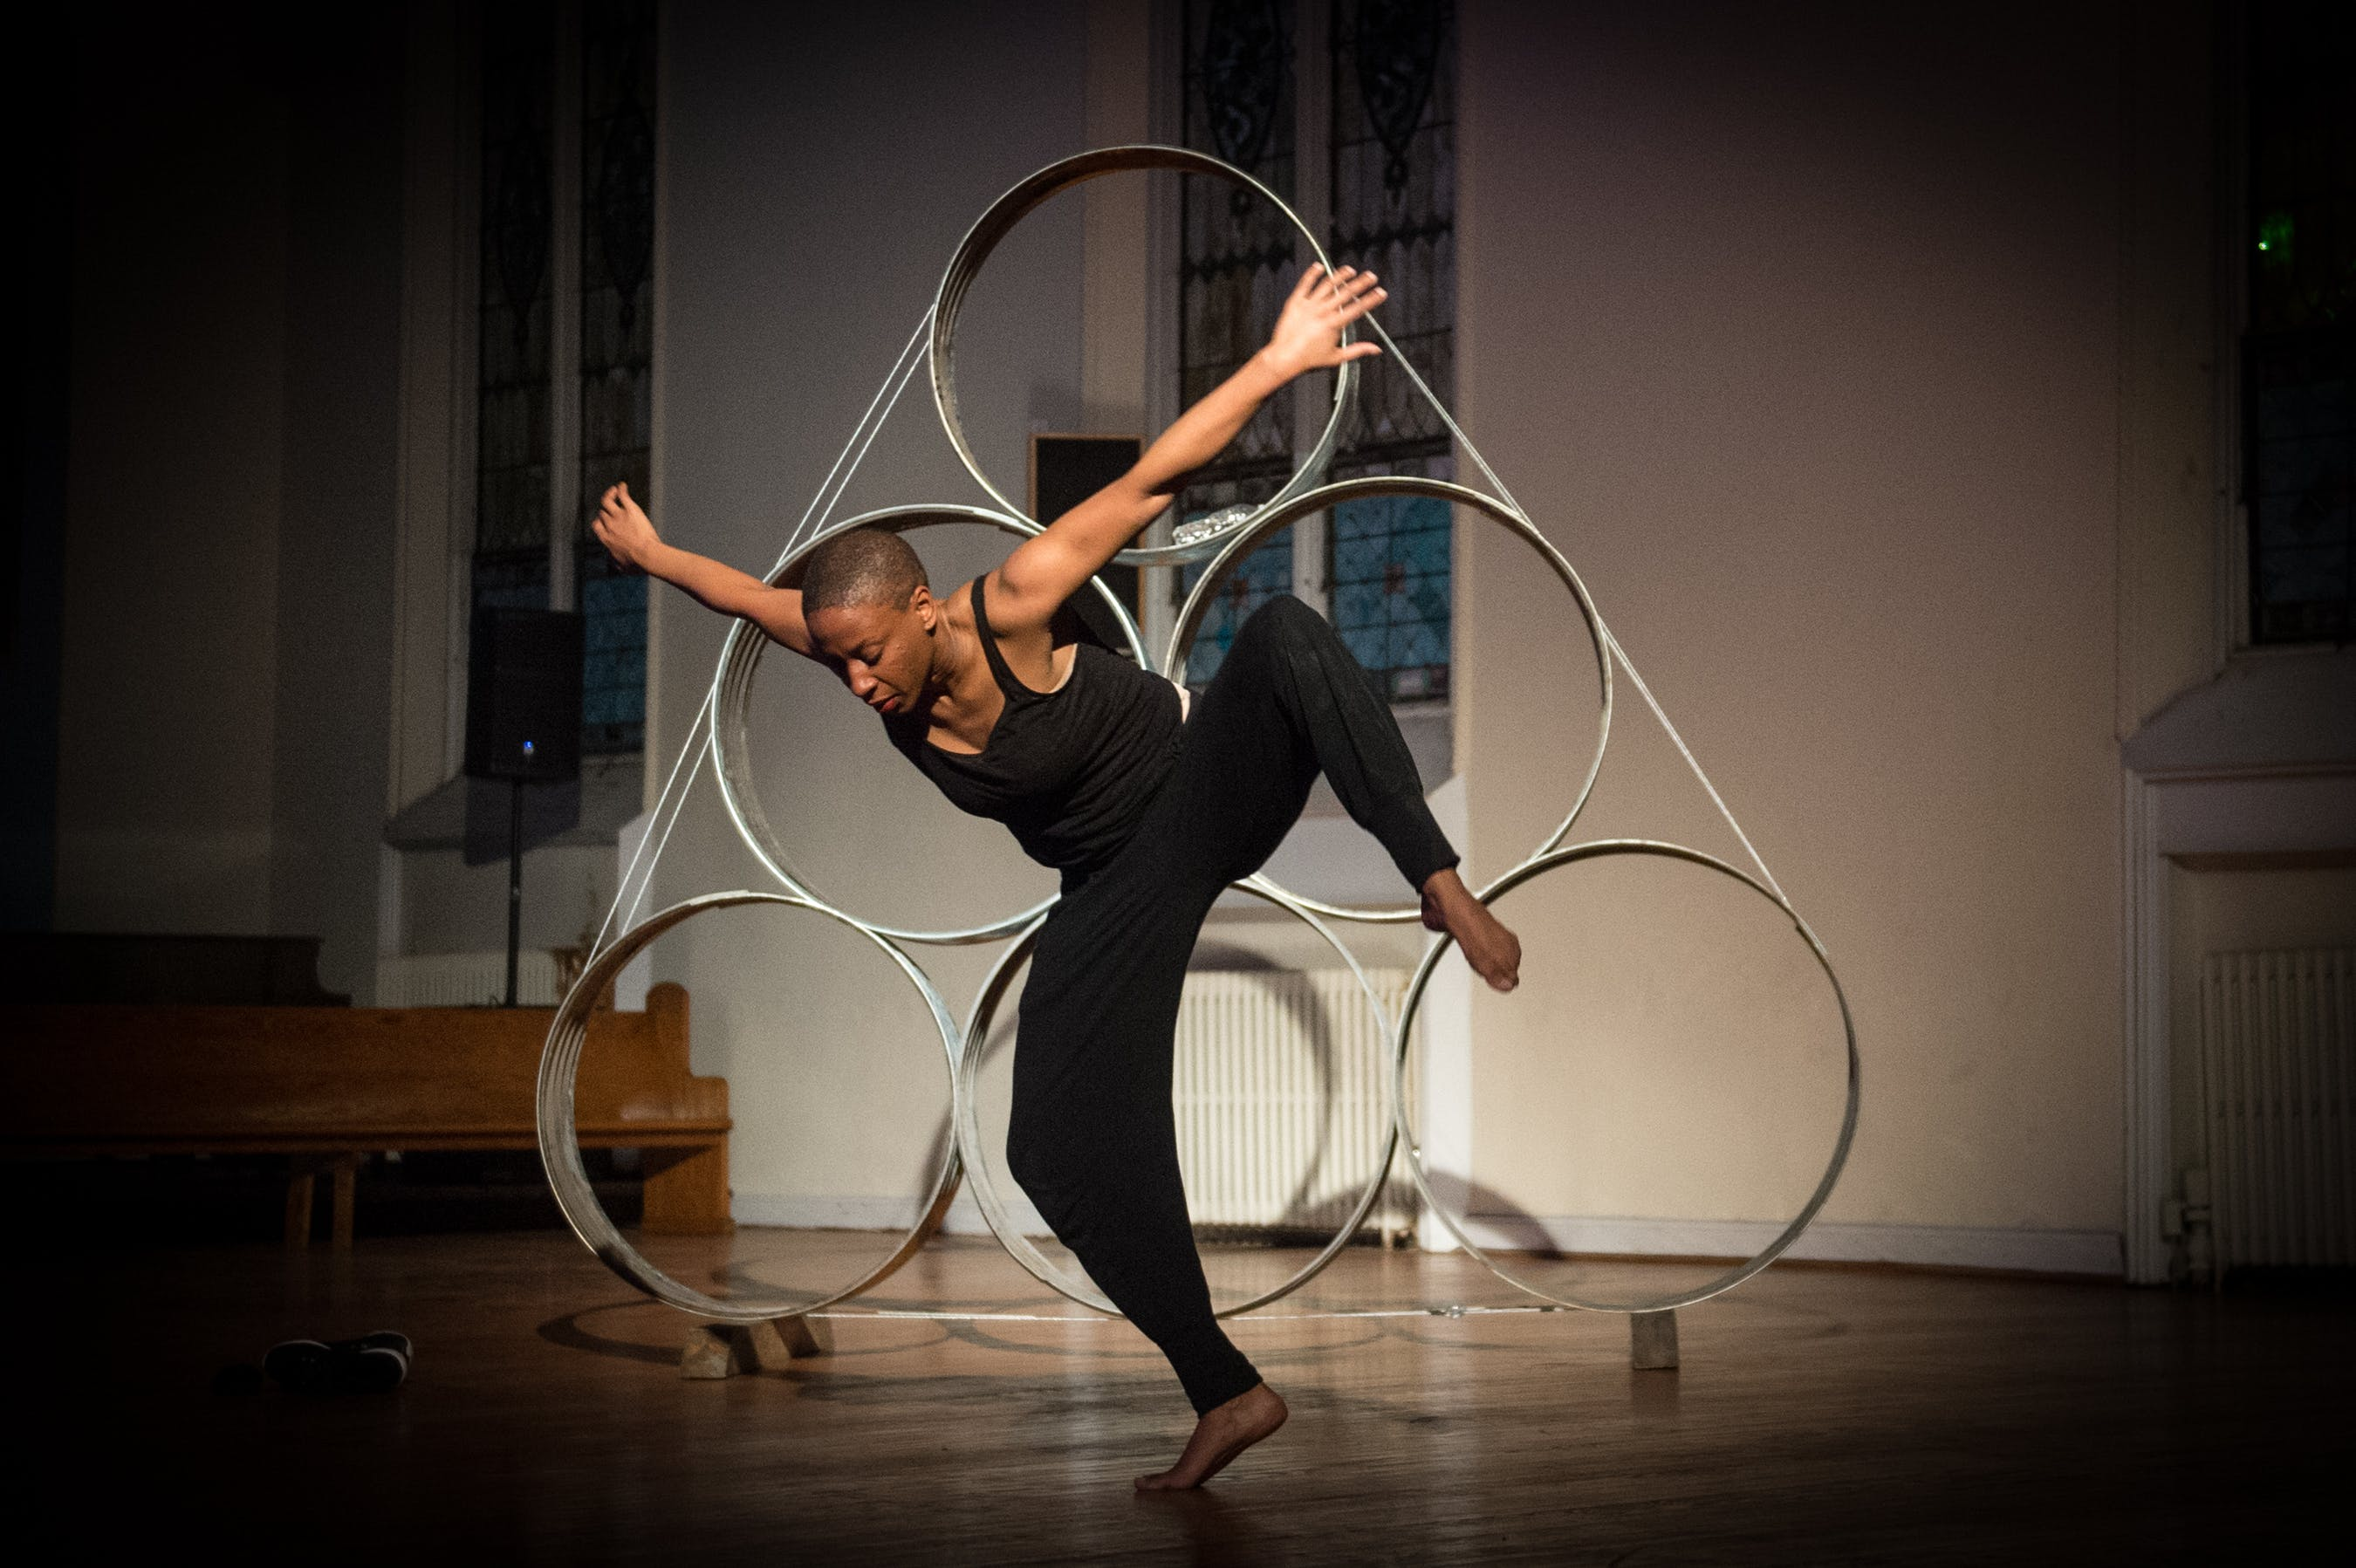 <p><em>Detroit Artists Market, a 2018 Knight Arts Challenge Detroit Winner, will commission performance artist Jennifer Harge (pictured) to create an immersive exhibition centering on intimacy, domesticity and resilience. Image courtesy of Detroit Artists Market.</em></p>